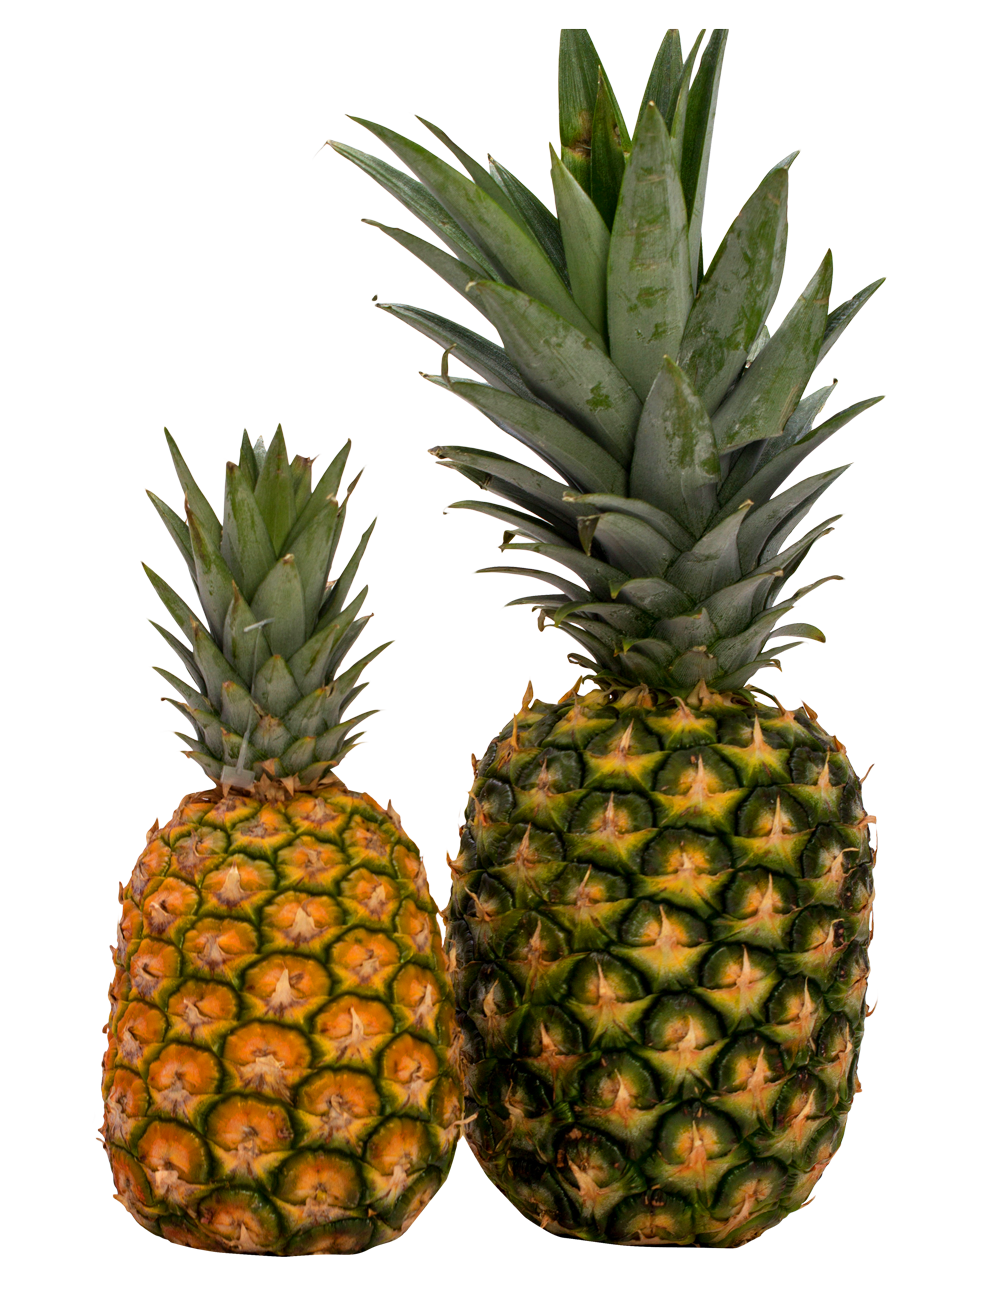 pineapple png image pngpix #18385